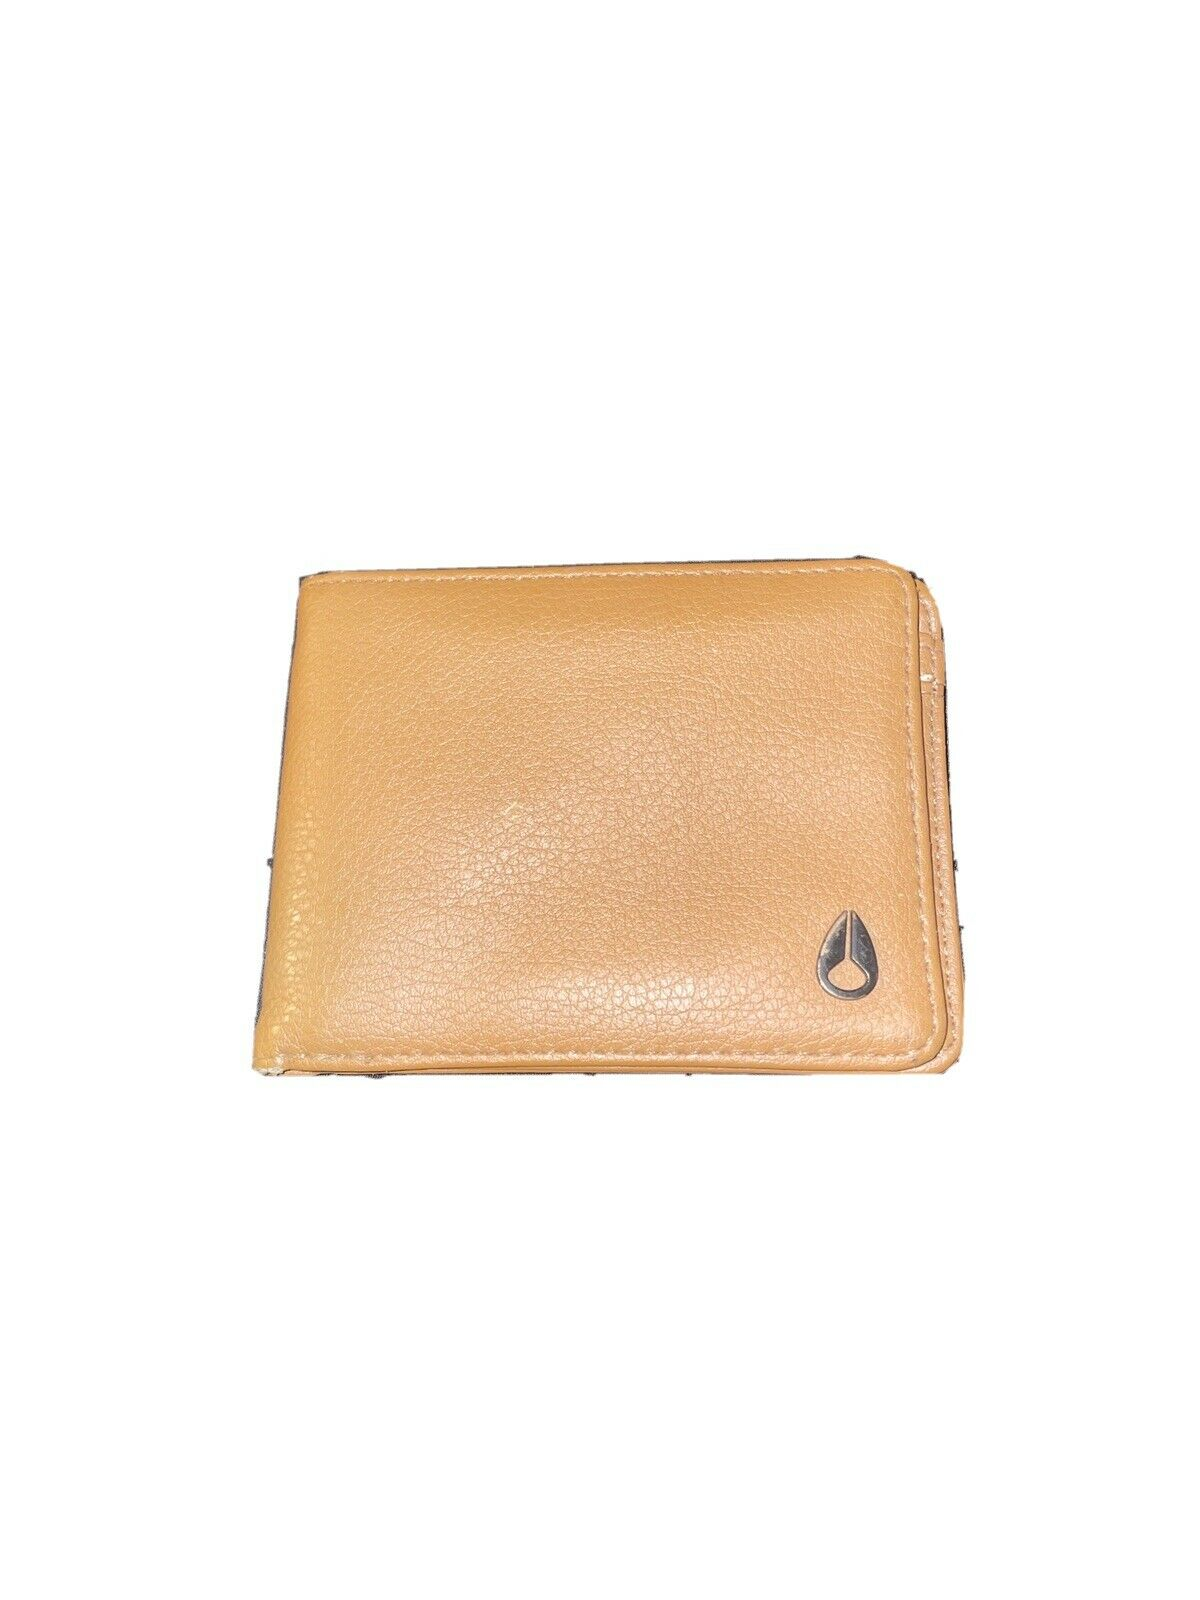 Nixon Pass Leather Coin Wallet | Saddle